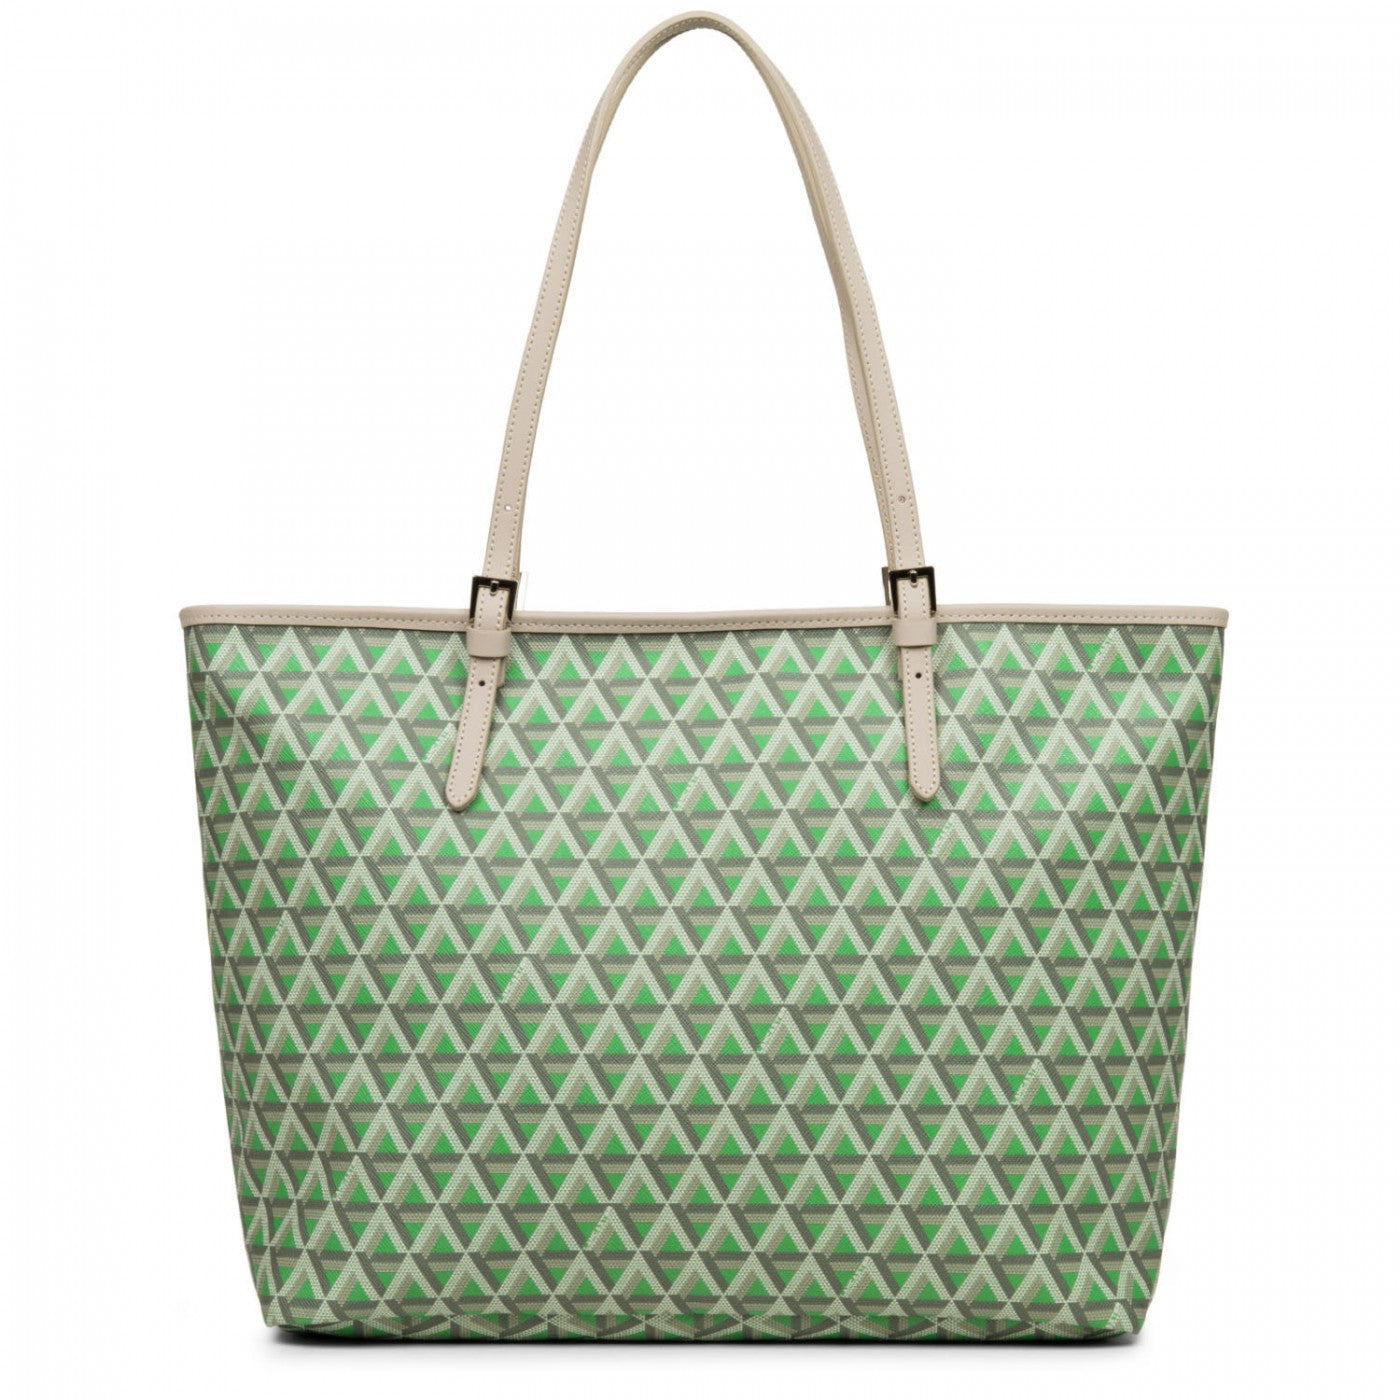 LANCASTER IKON SHOULDER BAG - GREEN